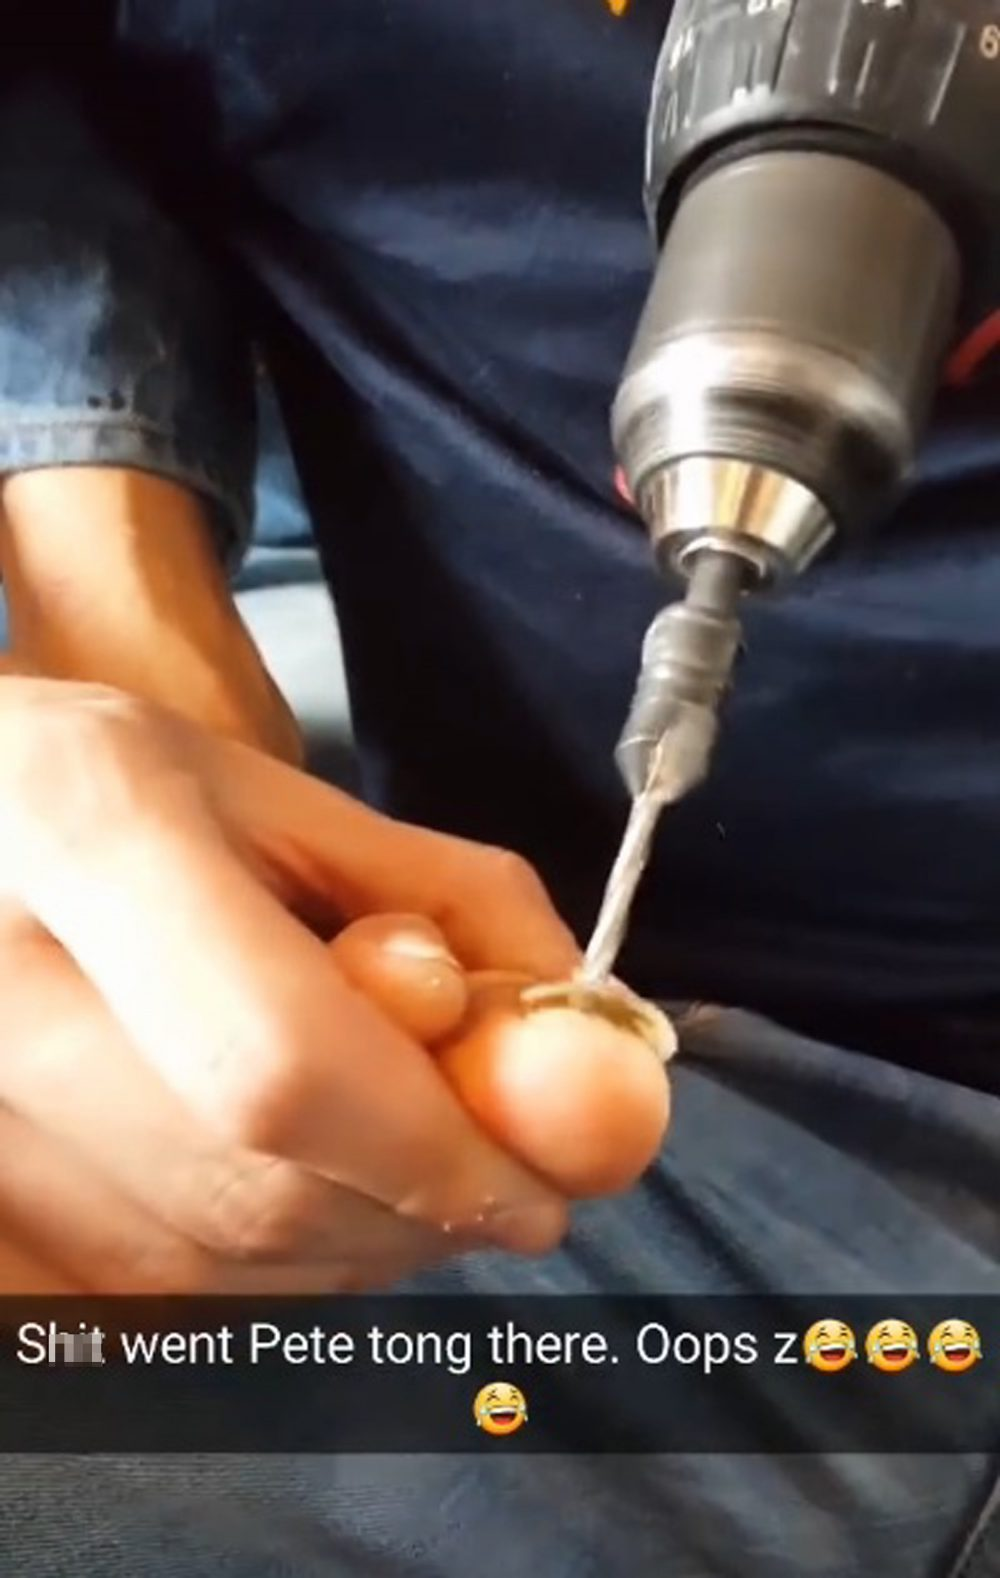 """A STOMACH-churning video shows the moment a Scot tried to remove his damaged big toe nail - with a power drill. Campbell Whyte and his pals had enjoyed a """"standard Sunday sesh"""" before deciding to do some DIY surgery. The labourer allowed his joiner friend, Lee Tarran, to use one of his work drills to try to make a hole in the nail. Campbell, 30, from Aviemore, Highland, planned to attach the nail - which was damaged playing football - by string to a door handle and pull it off. A gruesome clip of the operation shows the drill bit sliding around the nail before punching through. Unexpectedly, the nail then pops up - to a mixture of groans and cheers from a crowd of onlookers. The video is captioned: """"S*** went Pete Tong there. Oops."""" Although painful and obviously dangerous, the procedure was a total success as Campbell's big toe nail dropped off a few days later."""